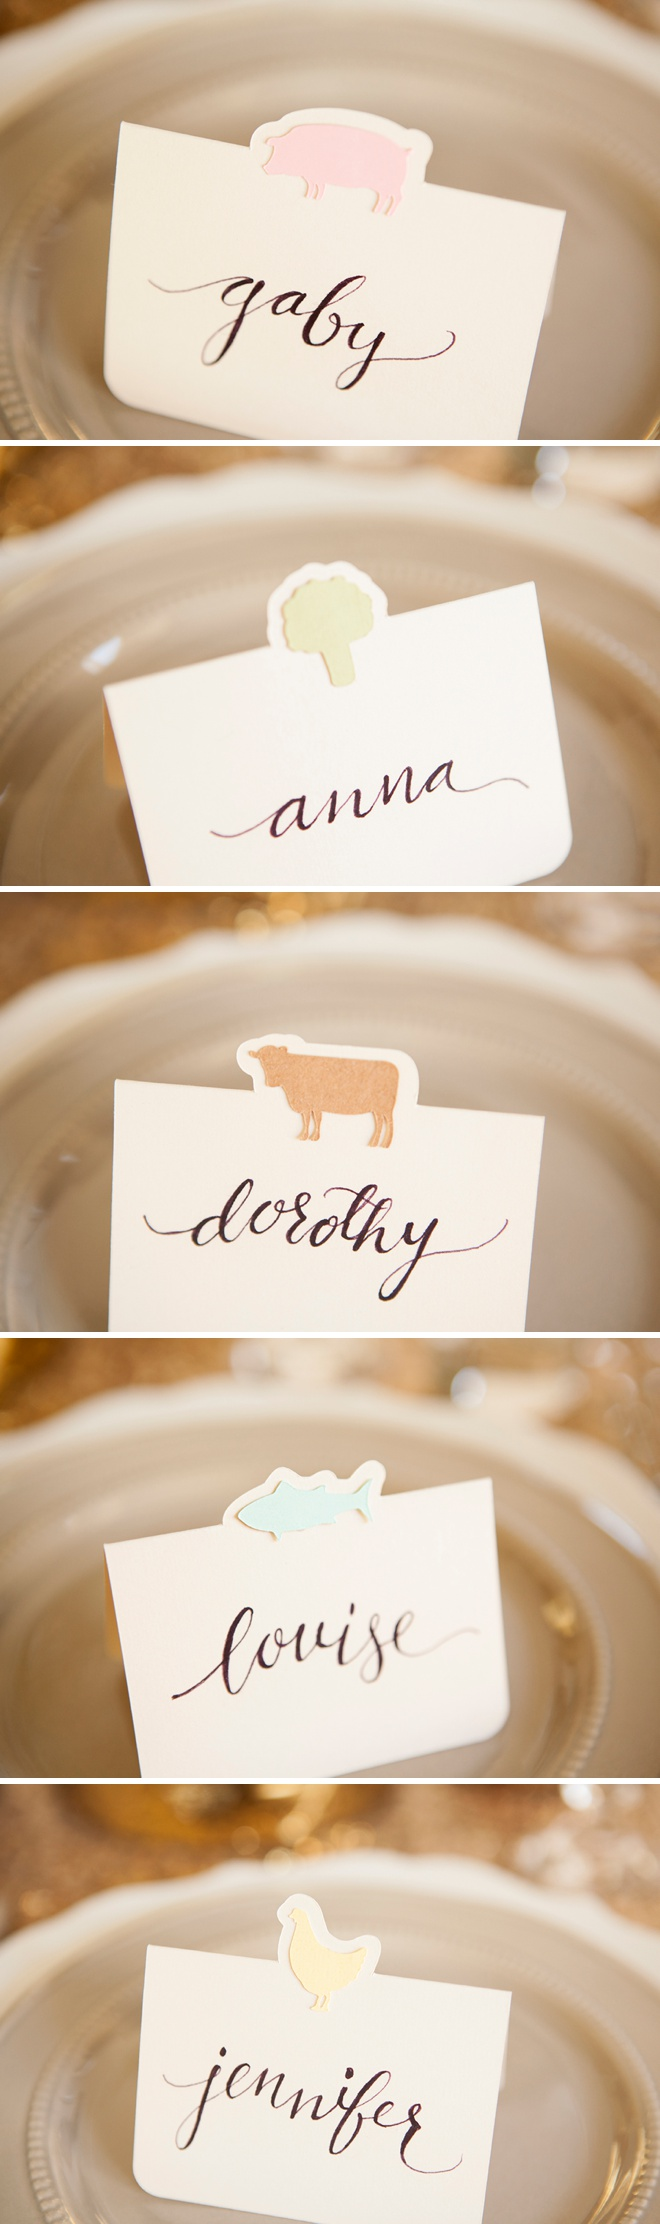 The cutest diy entree choice seating cards ever darling diy idea for wedding seating cards with each guests choice of entre free cricut solutioingenieria Images